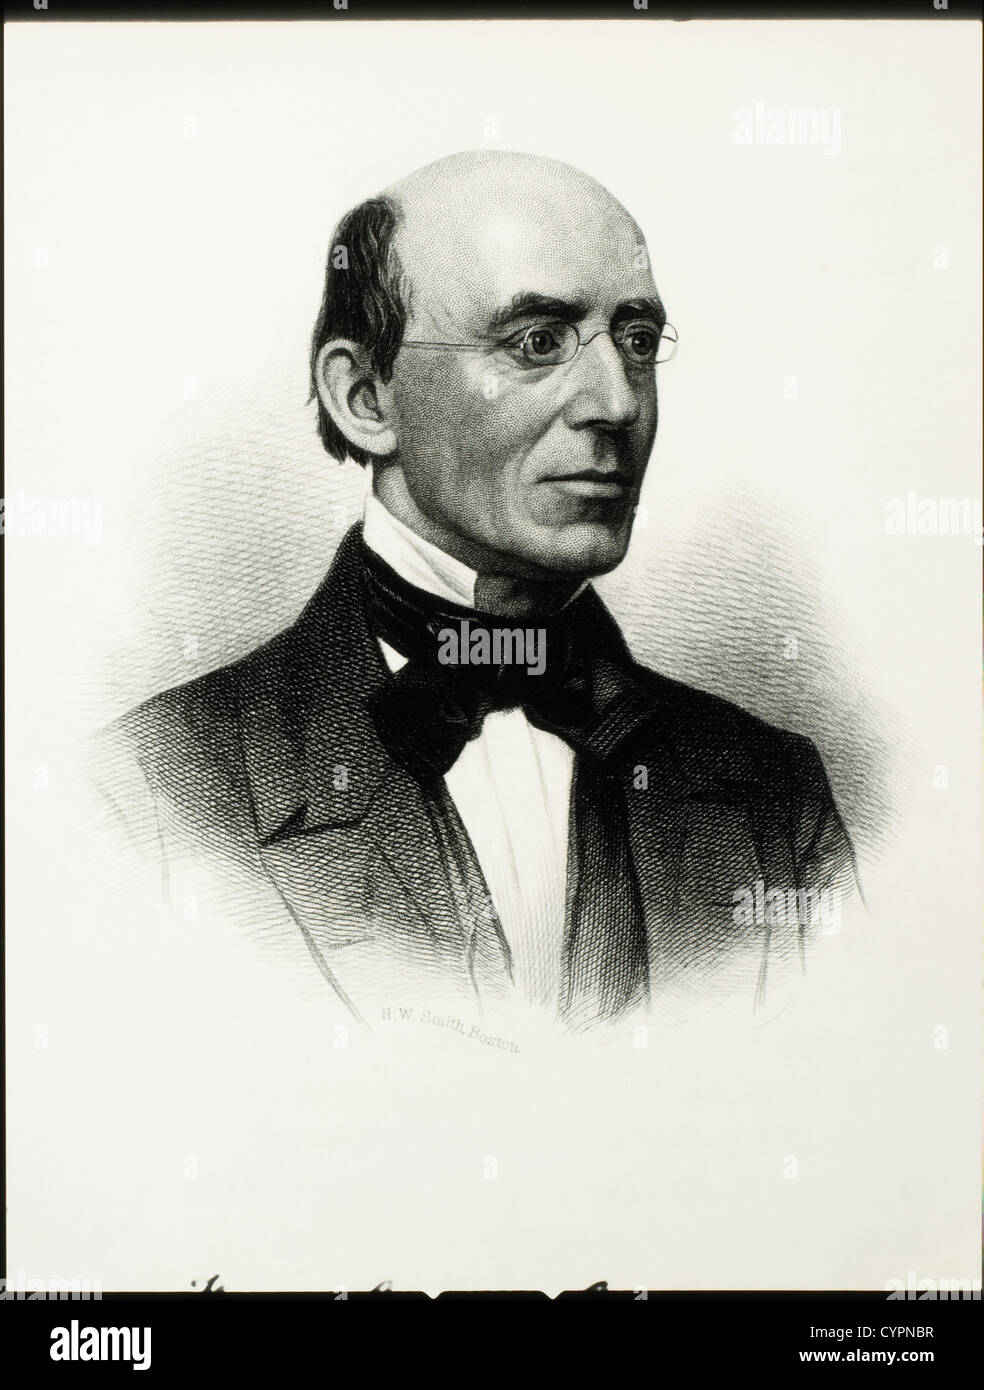 William Lloyd Garrison (1805-1879), Abolitionist and Publisher - Stock Image